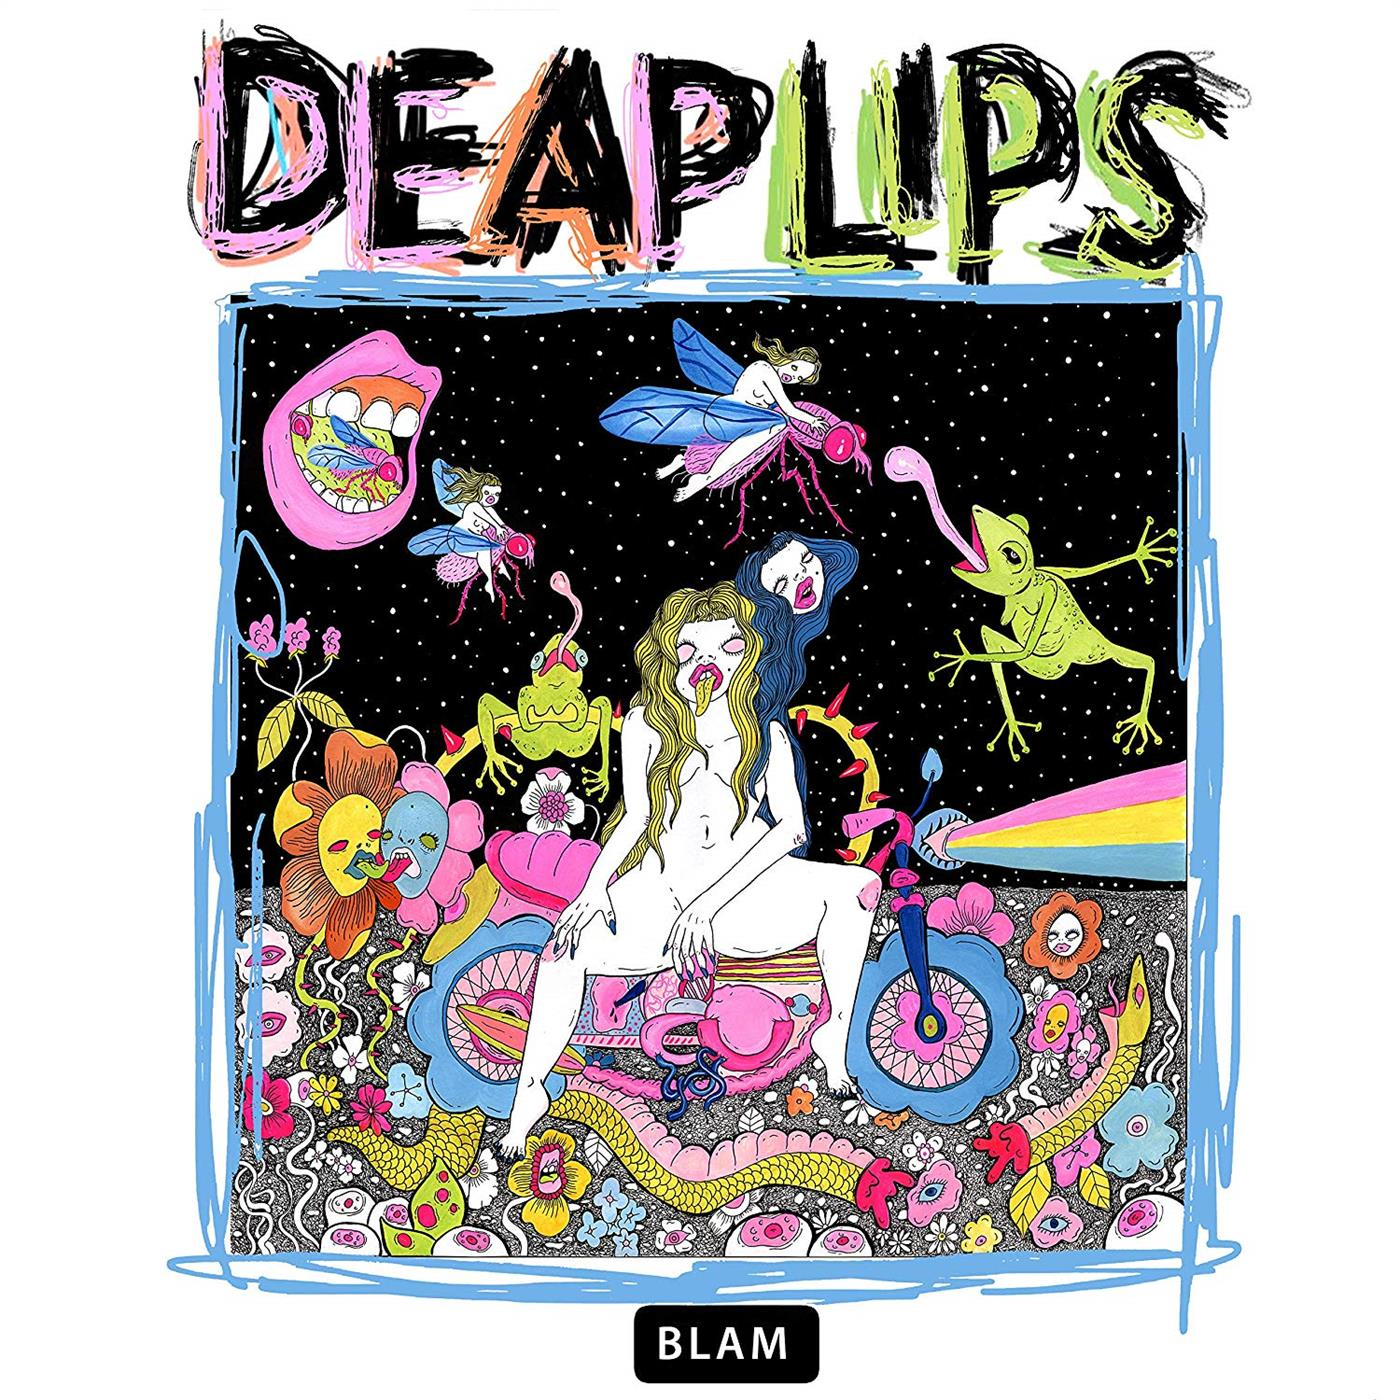 COOKLP756XX Cooking Vinyl  Deap Lips Deap Lips - LTD (LP)